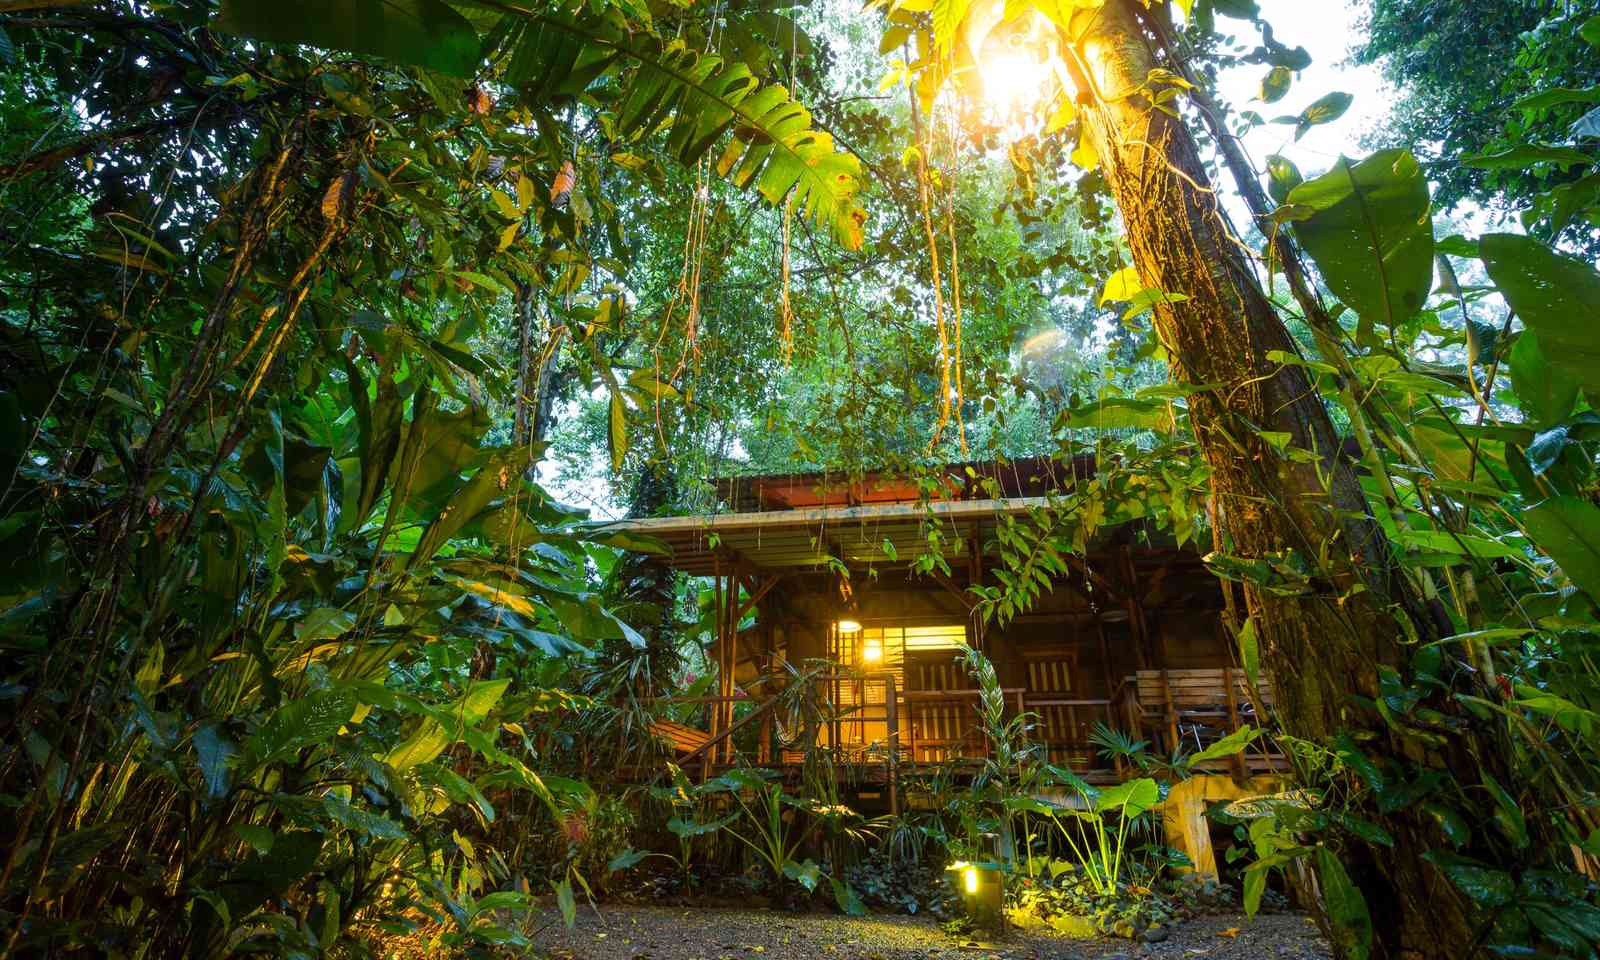 Eco lodge in Costa Rican rainforest (Shutterstock.com)